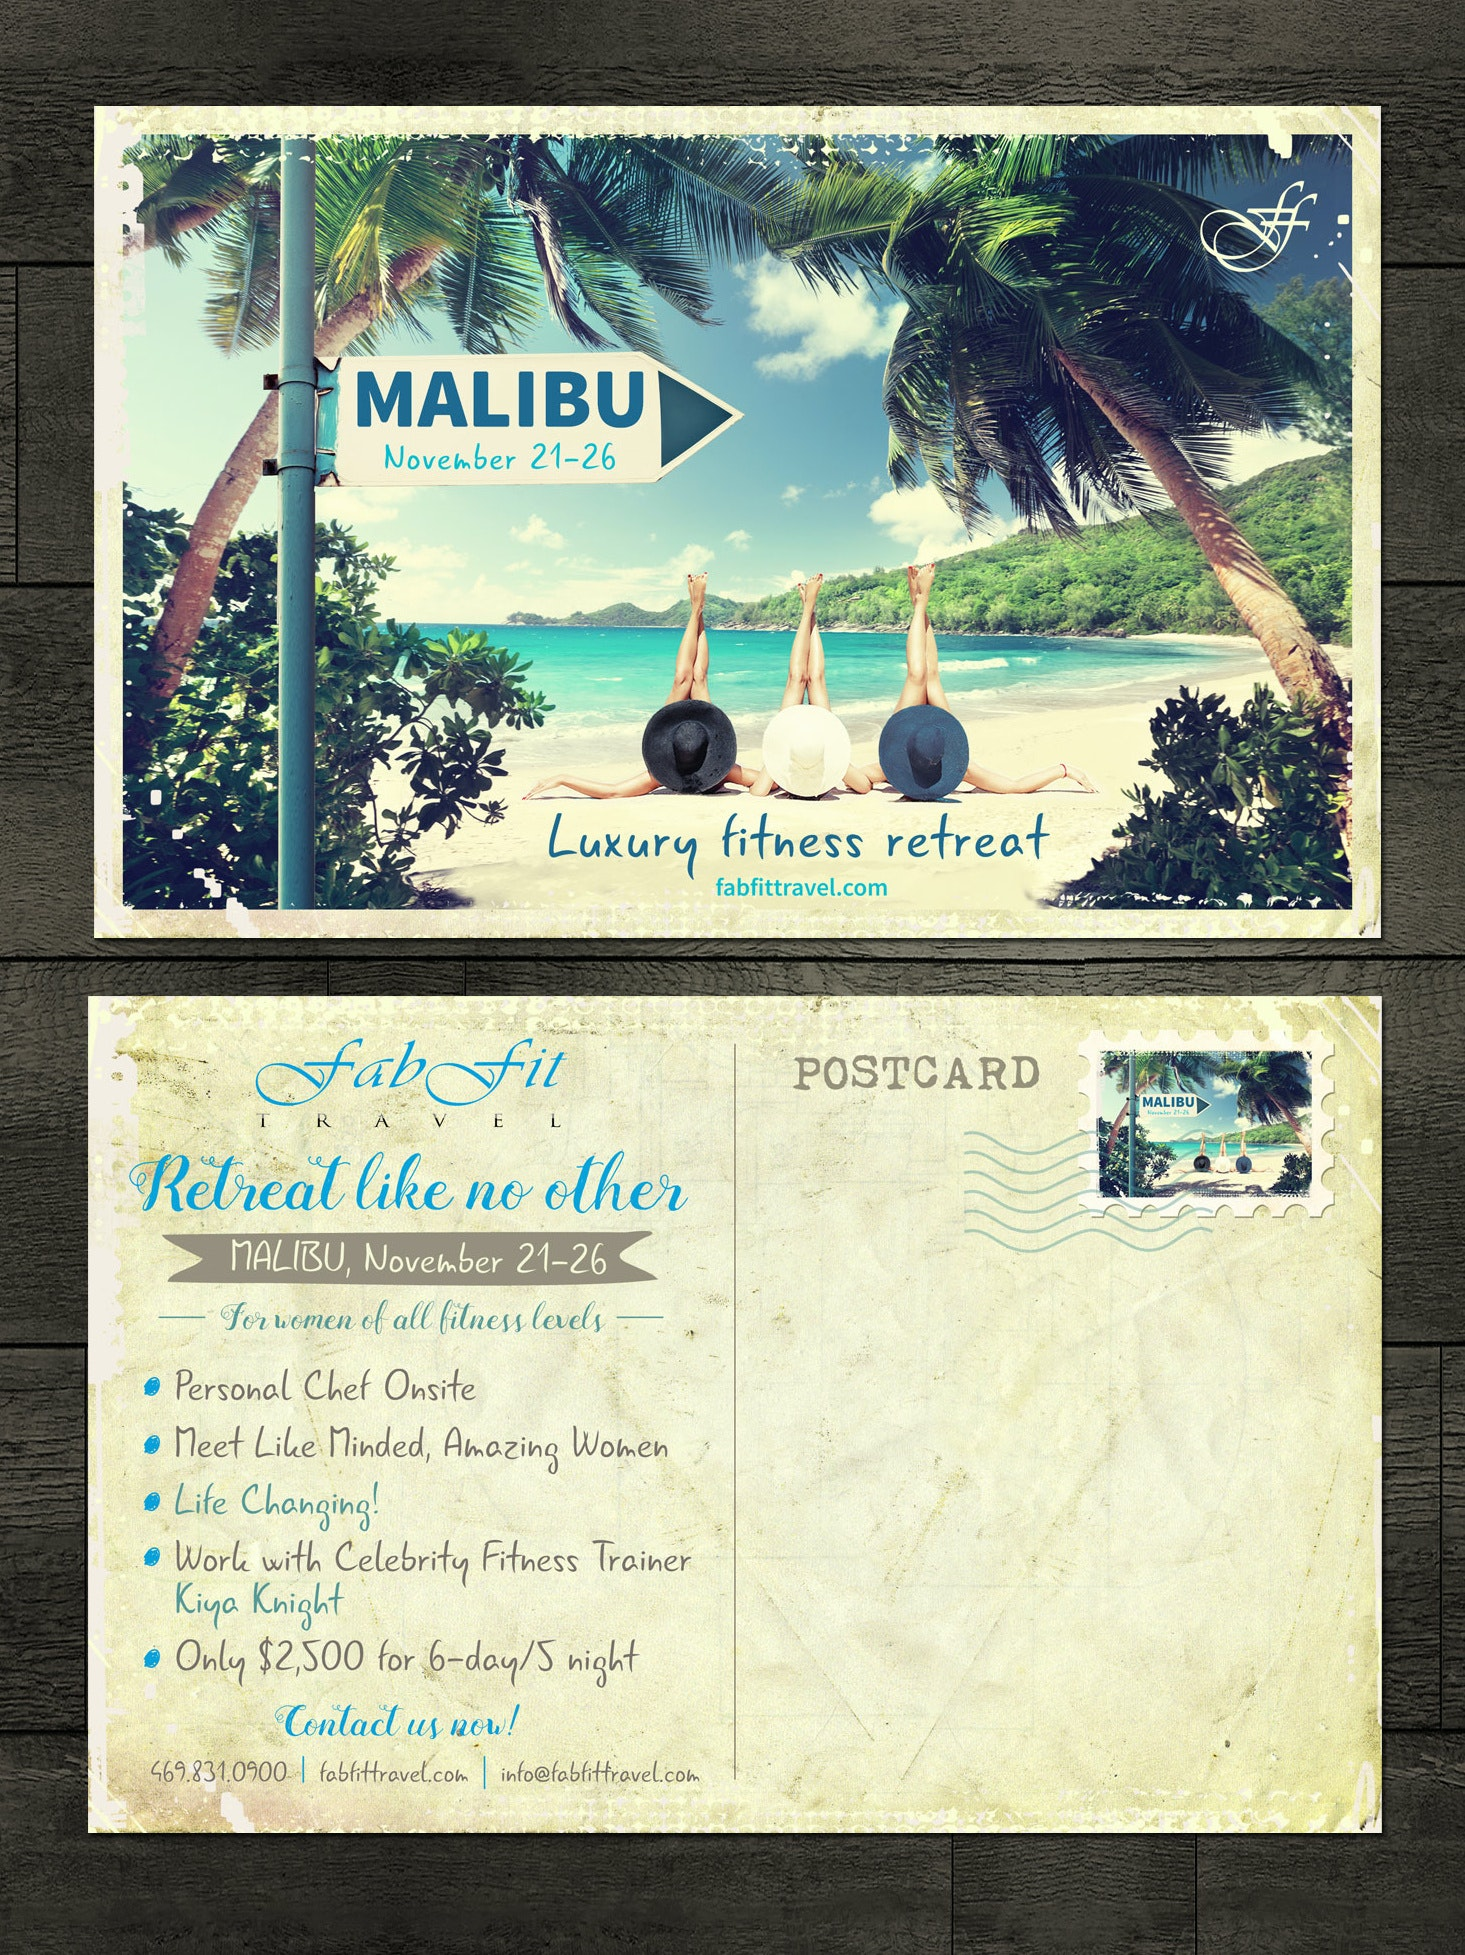 Malibu travel postcard for fitness travel company